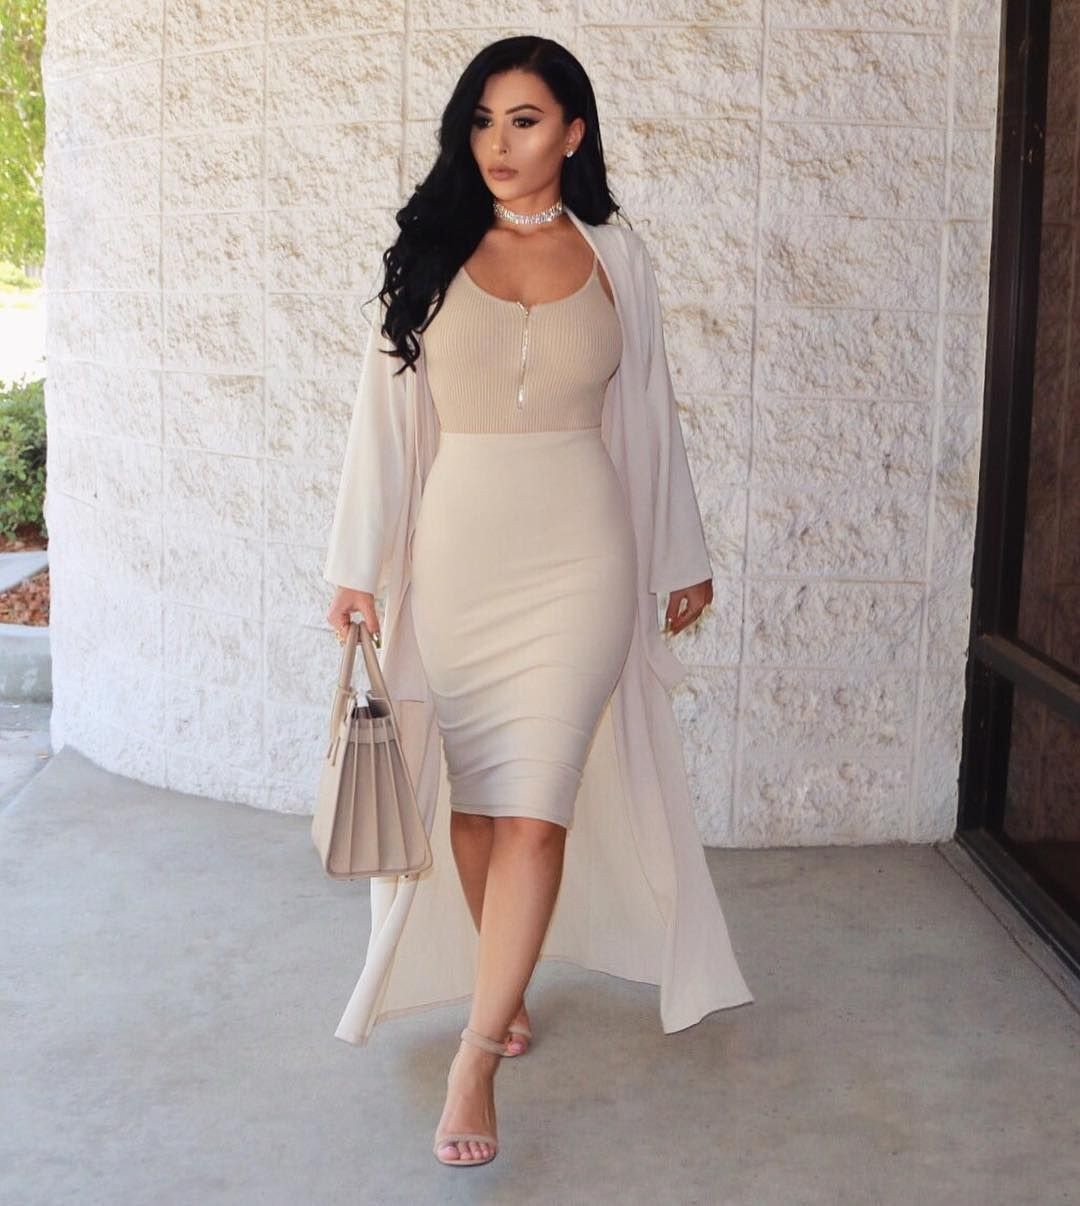 Beige pencil skirt outfit, Wedding dress